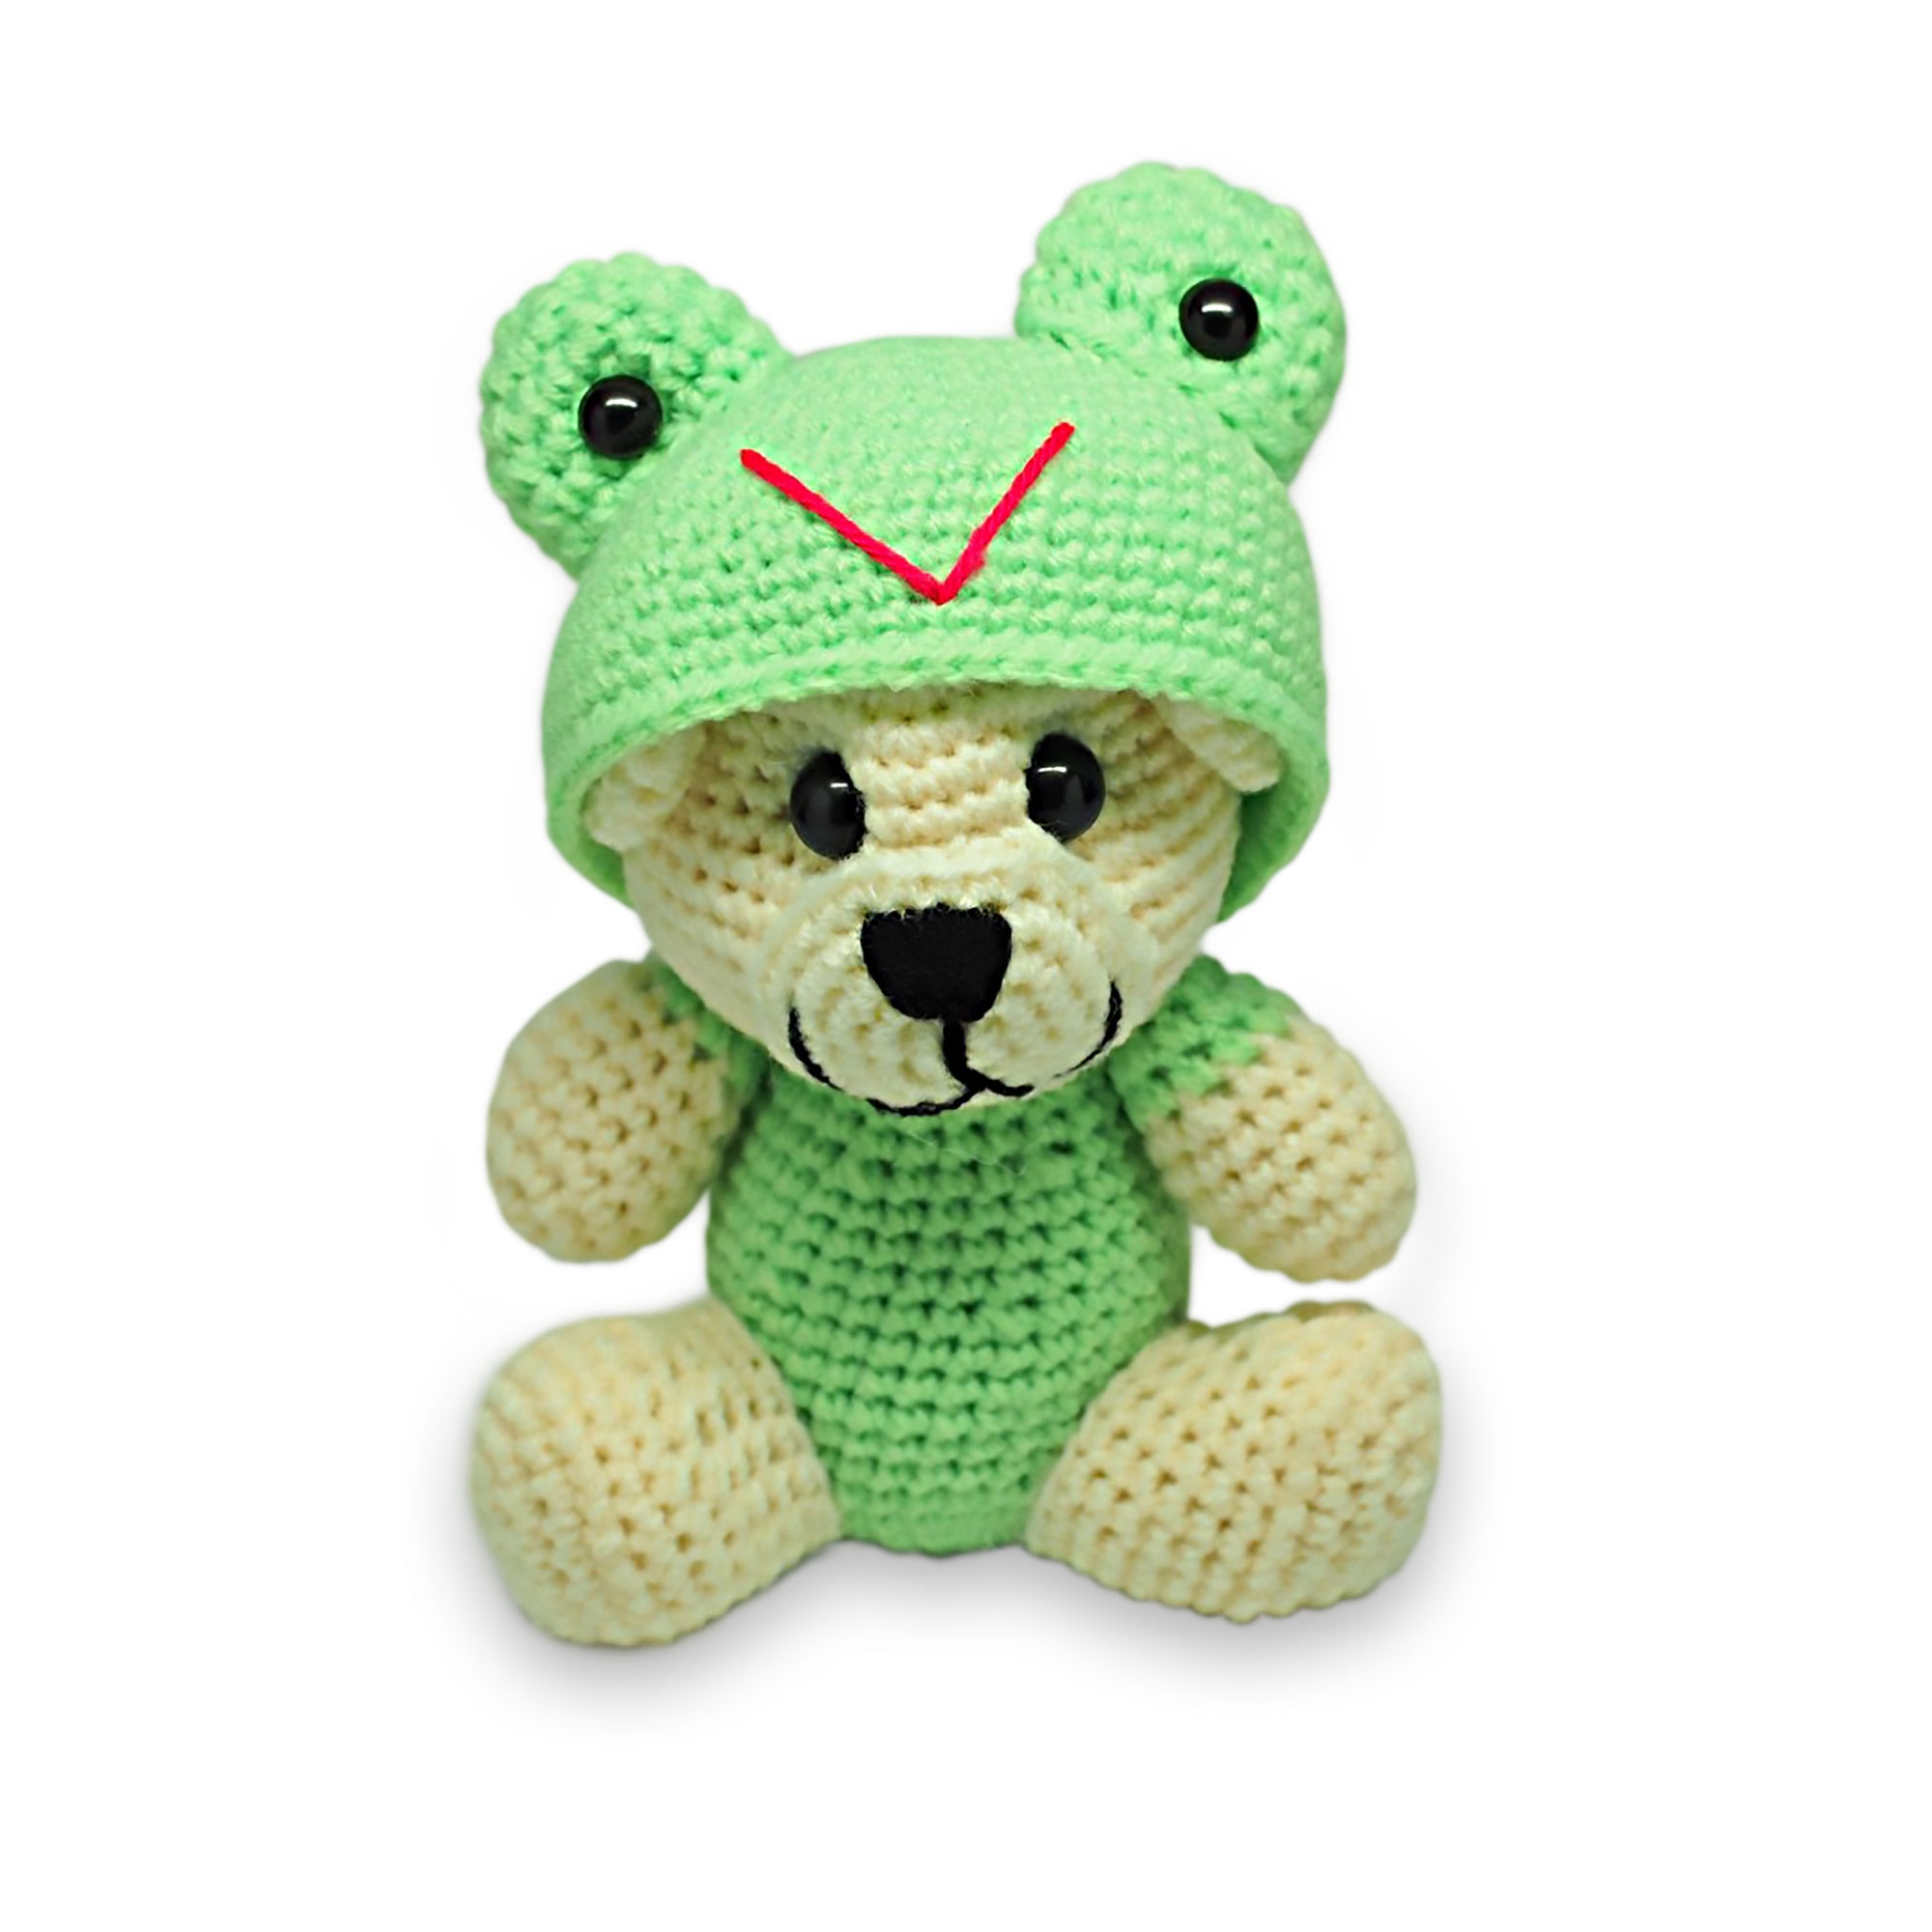 Tubby Froggy Crochet Teddy Bear, Handmade Teddy Bears - Quan Jewelry